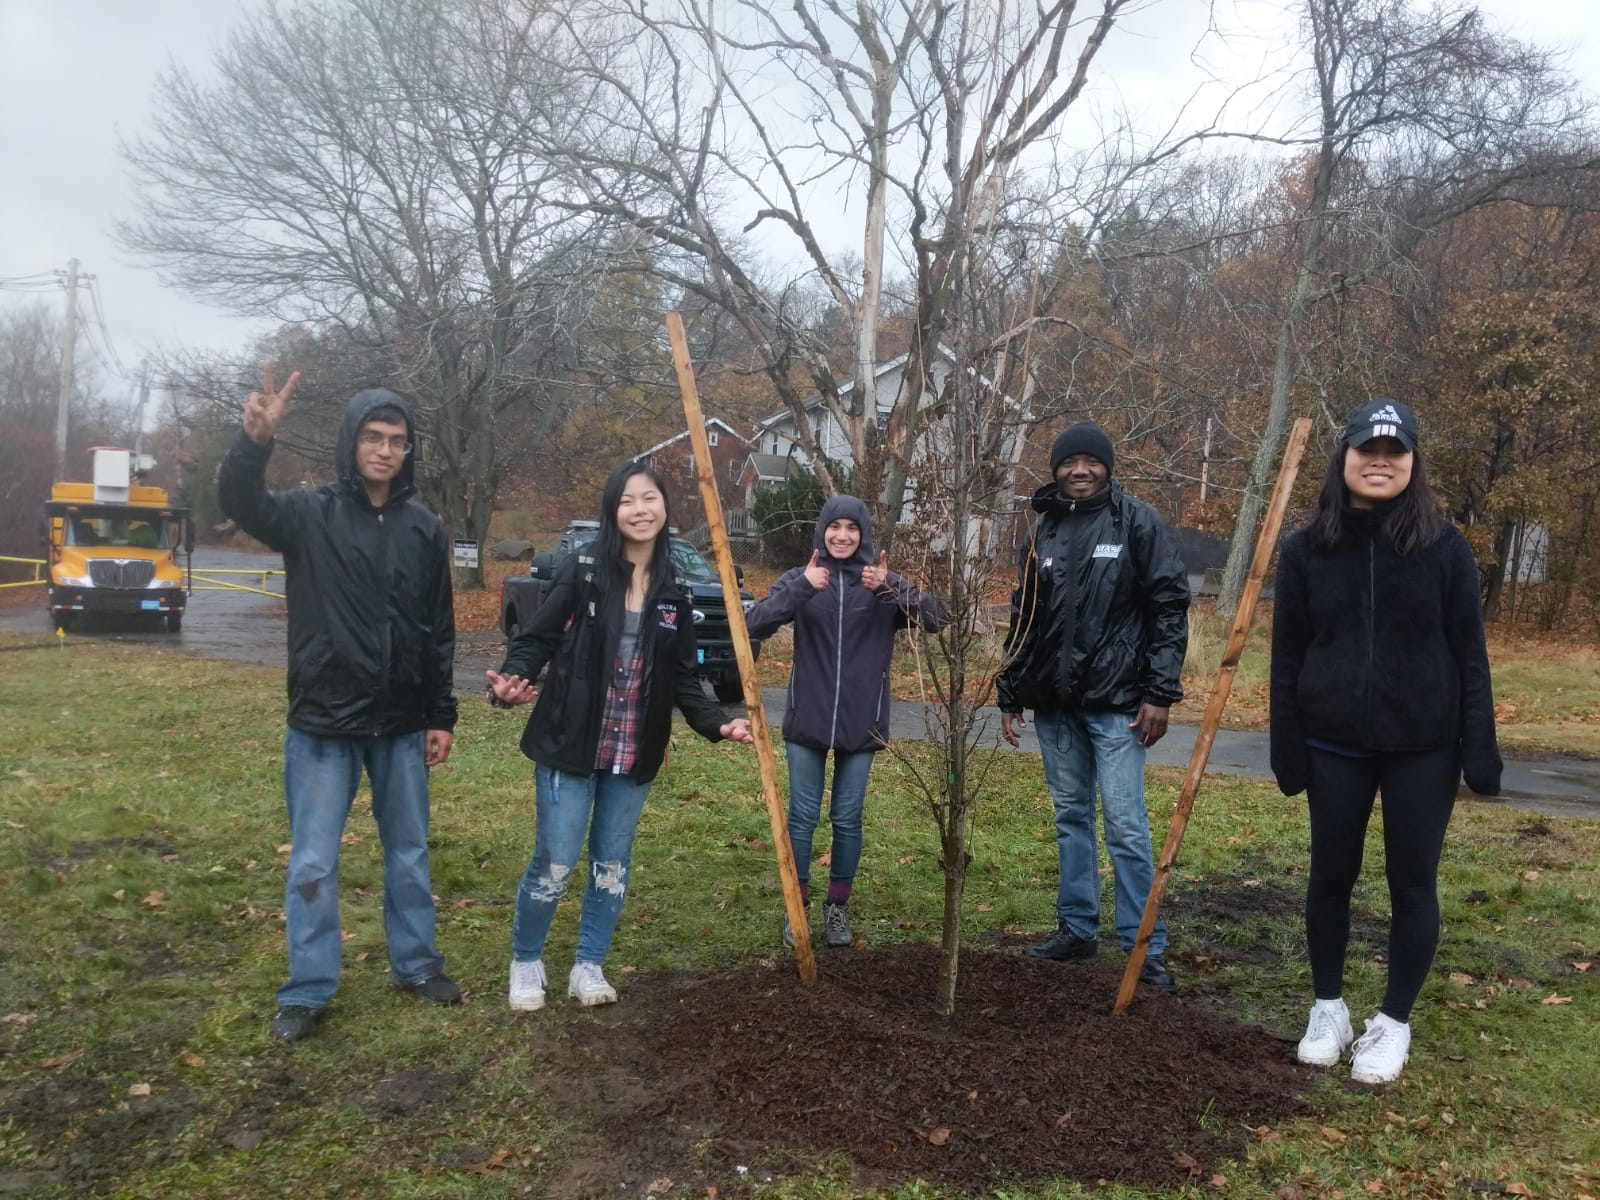 Prince and friends planting trees in Waltham